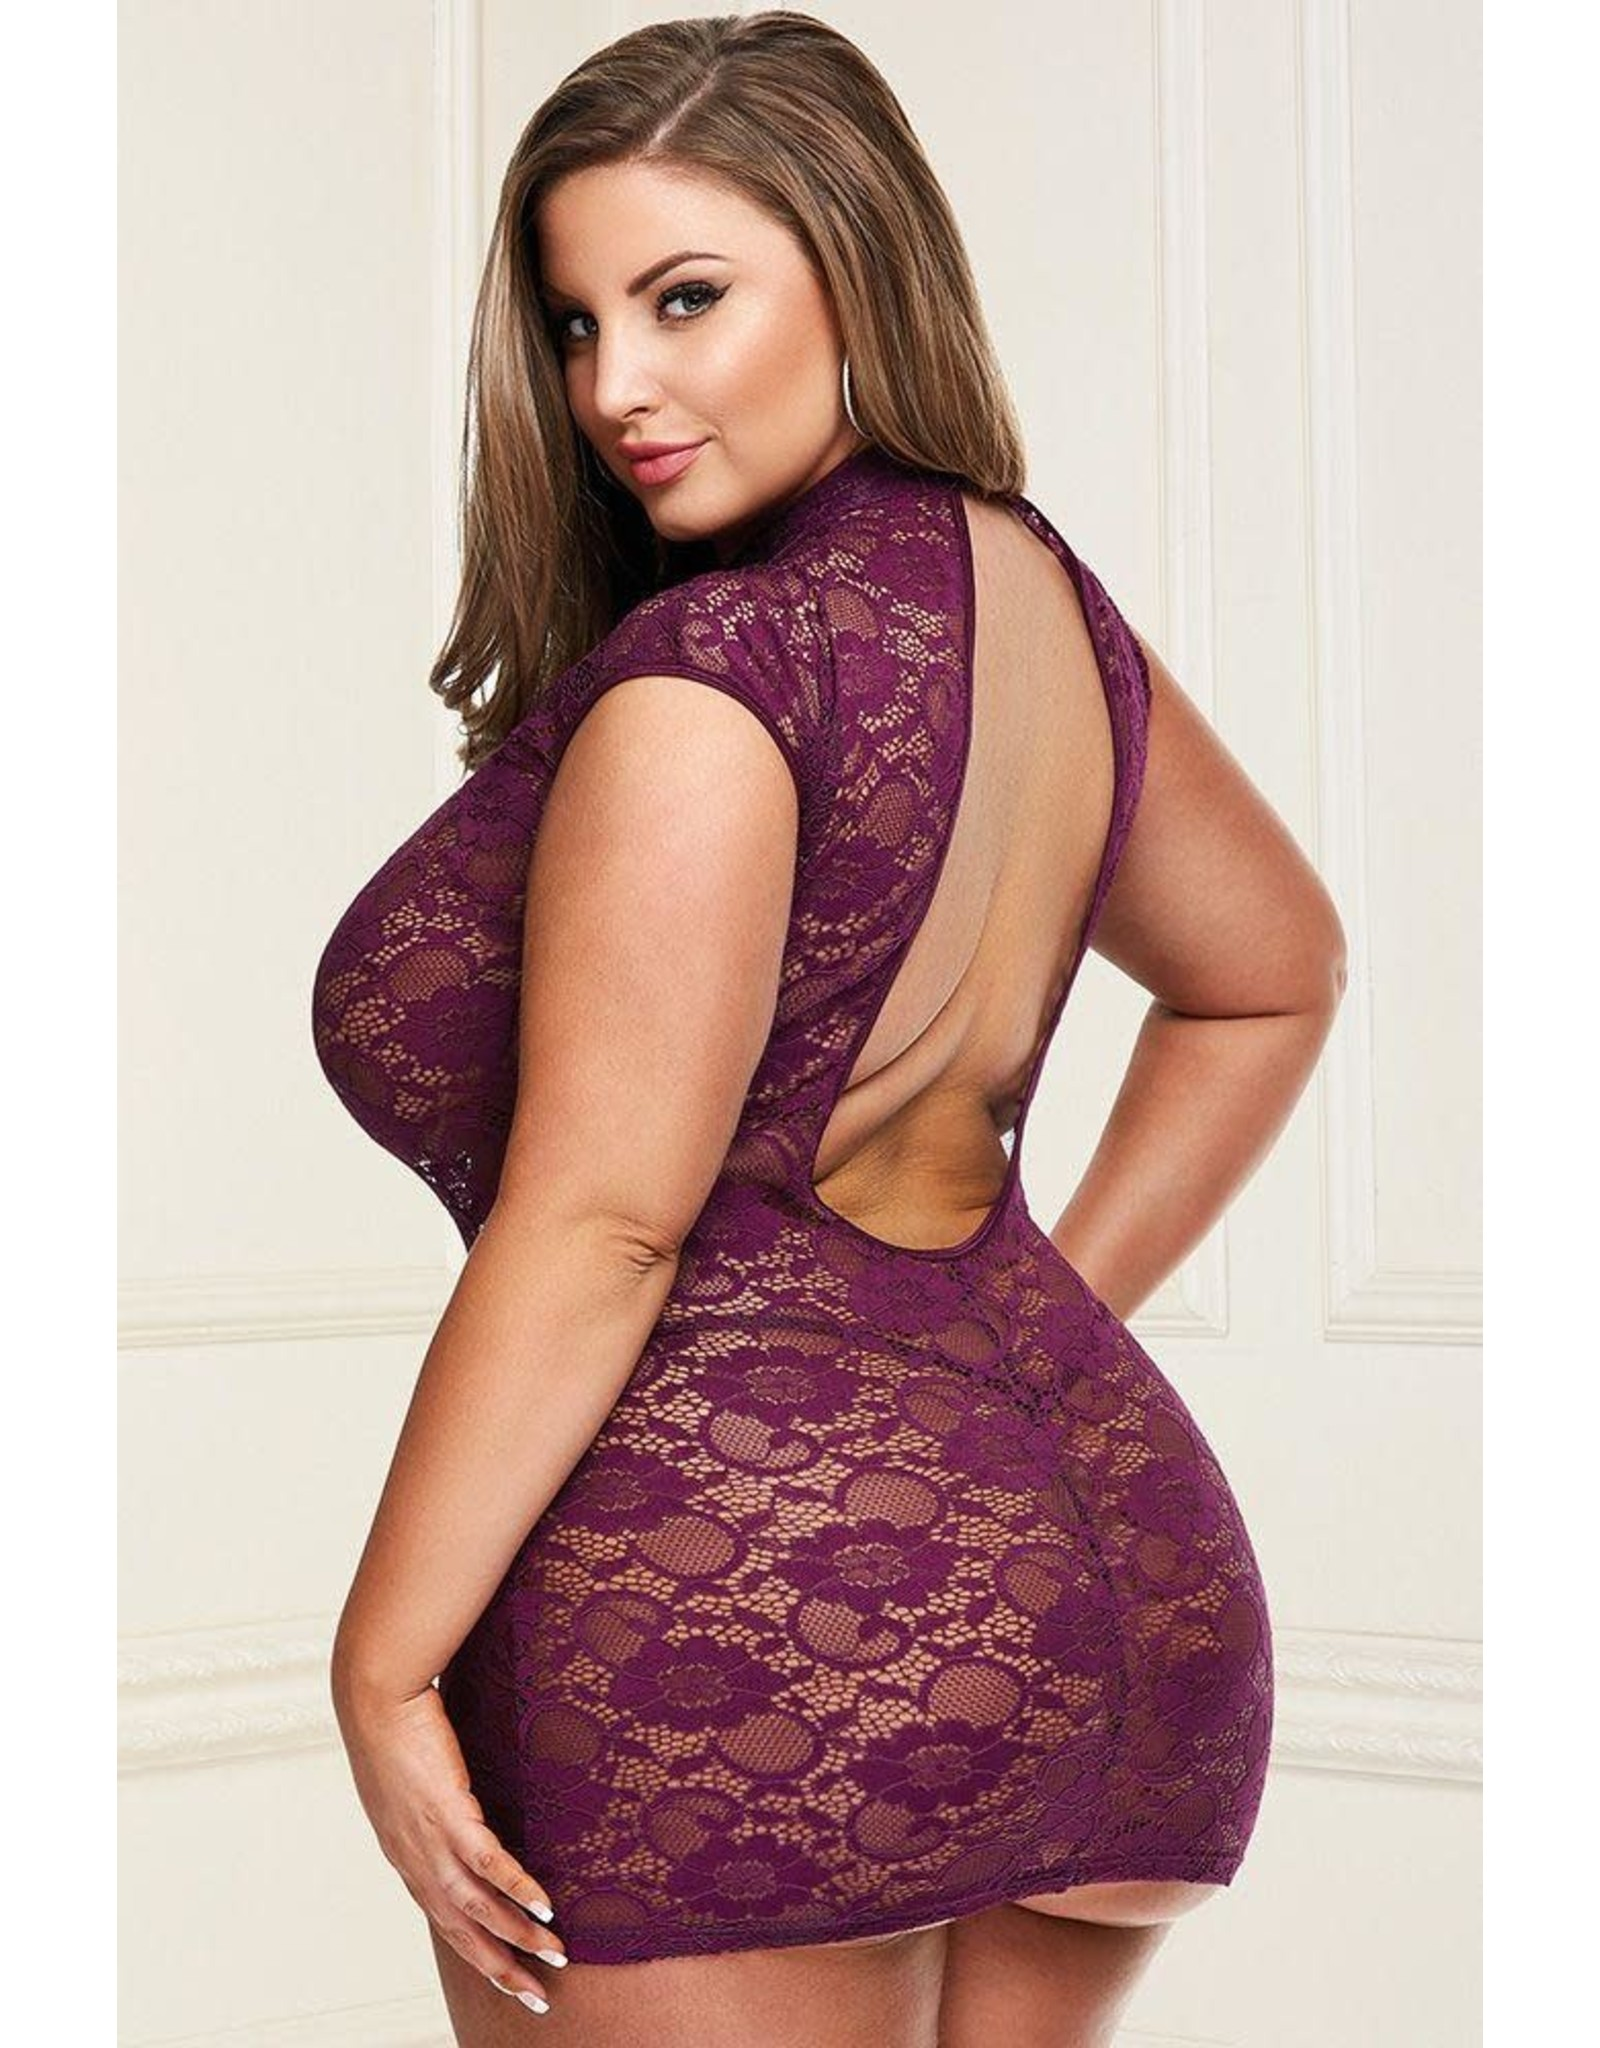 BACI - DRESSED TO THE NINES - PURPLE - QUEEN SIZE